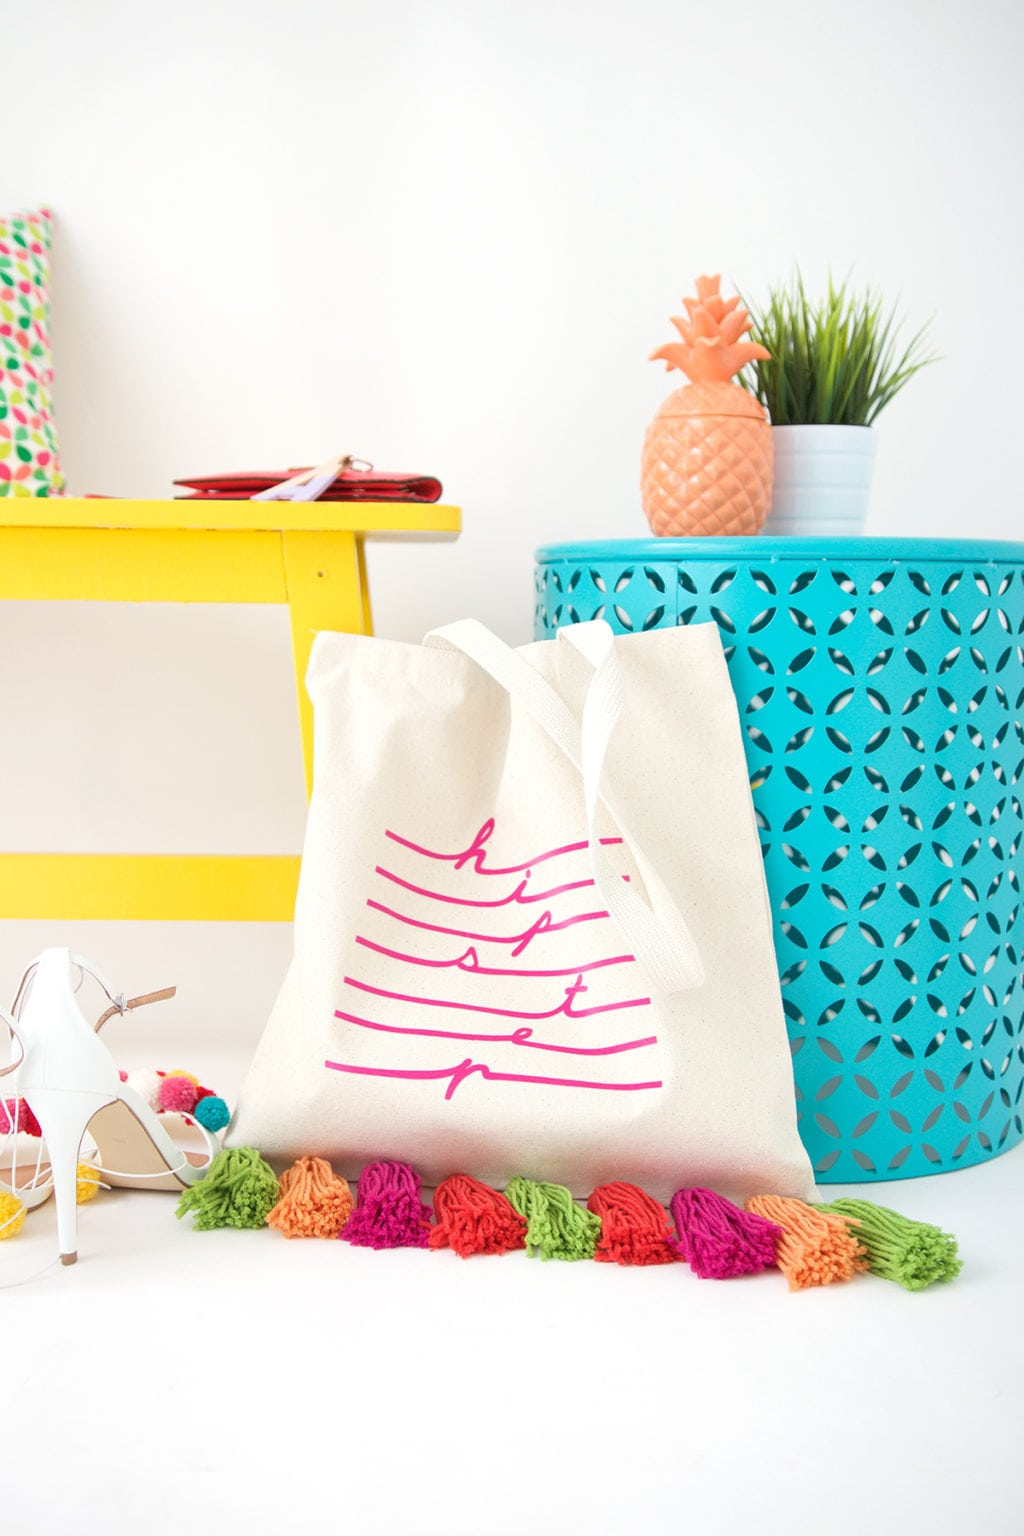 Creating a tassel tote bag has never been easier or more stylish. Usher in the summer with this tote that will turn heads.